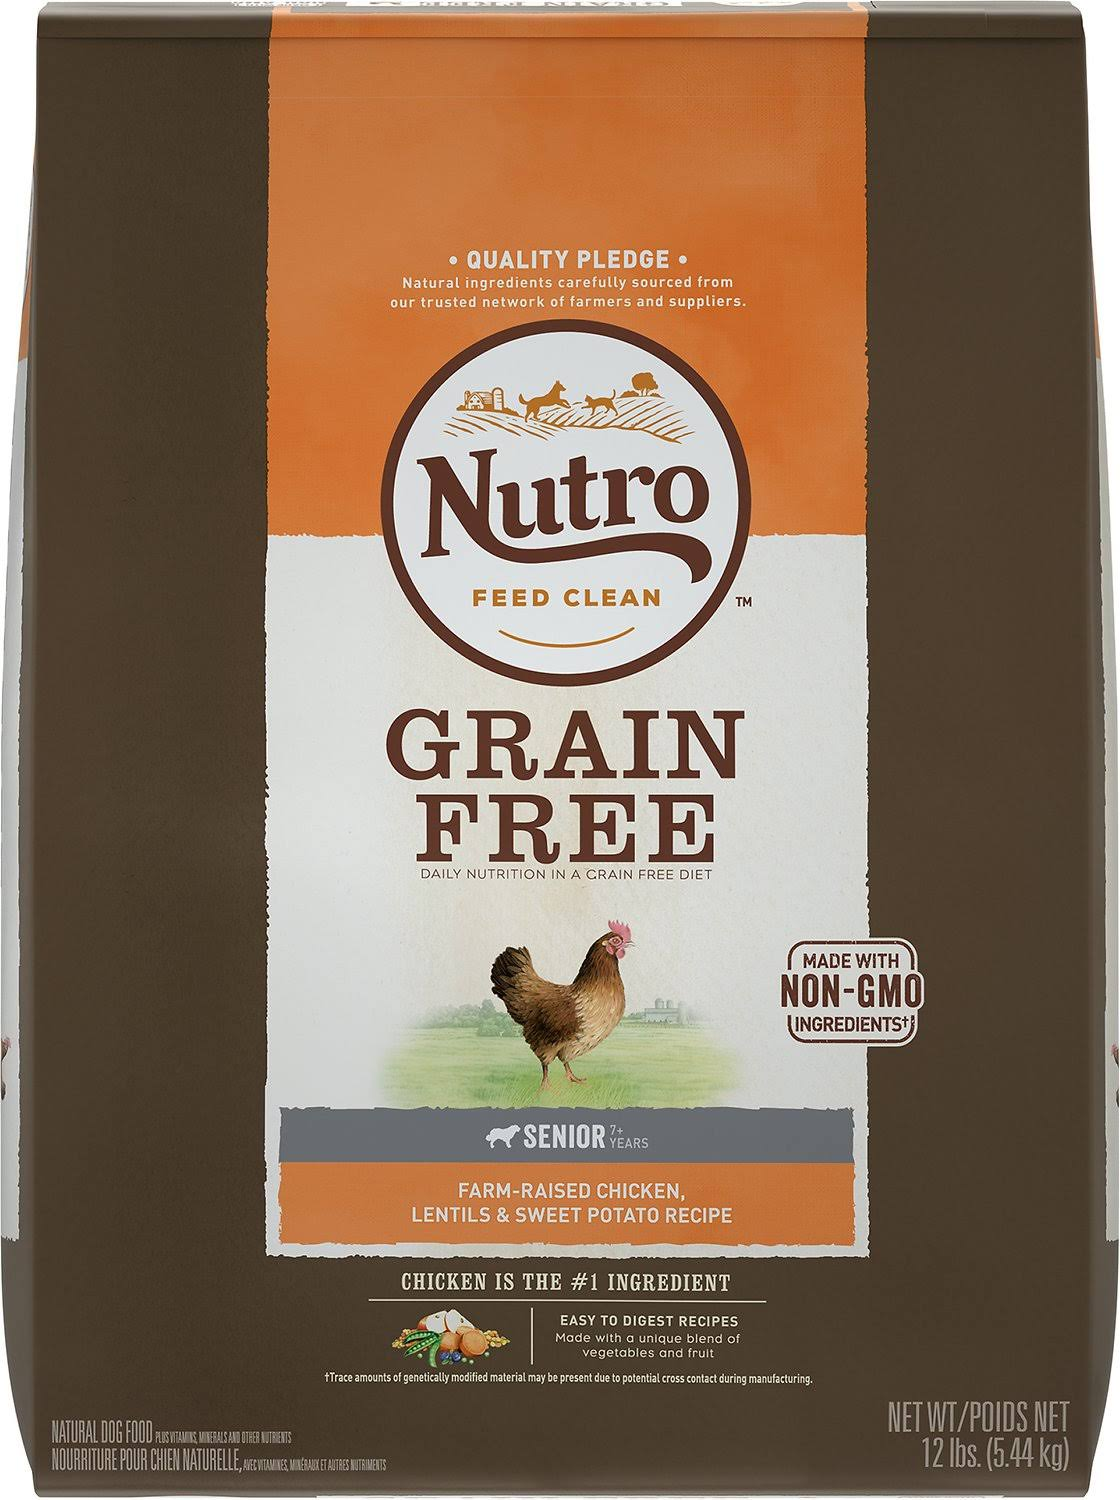 Nutro Grain Free Senior Dog Food - Chicken and Lentils Recipe, 12lb